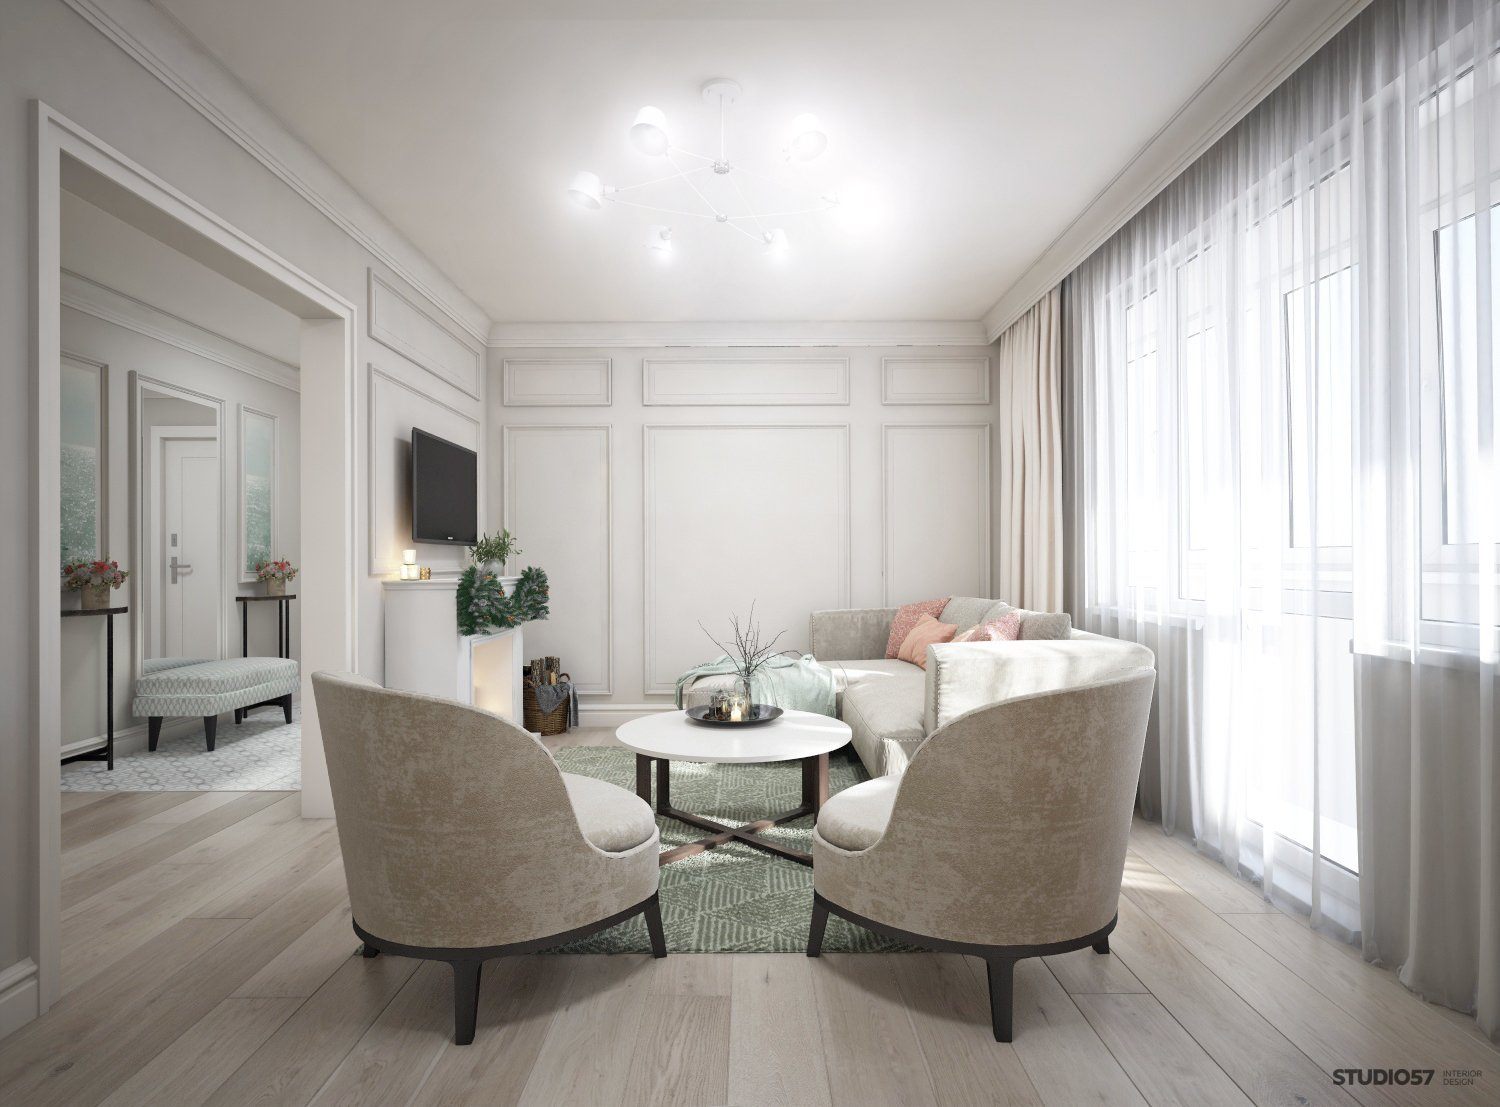 Photo of the modern living room